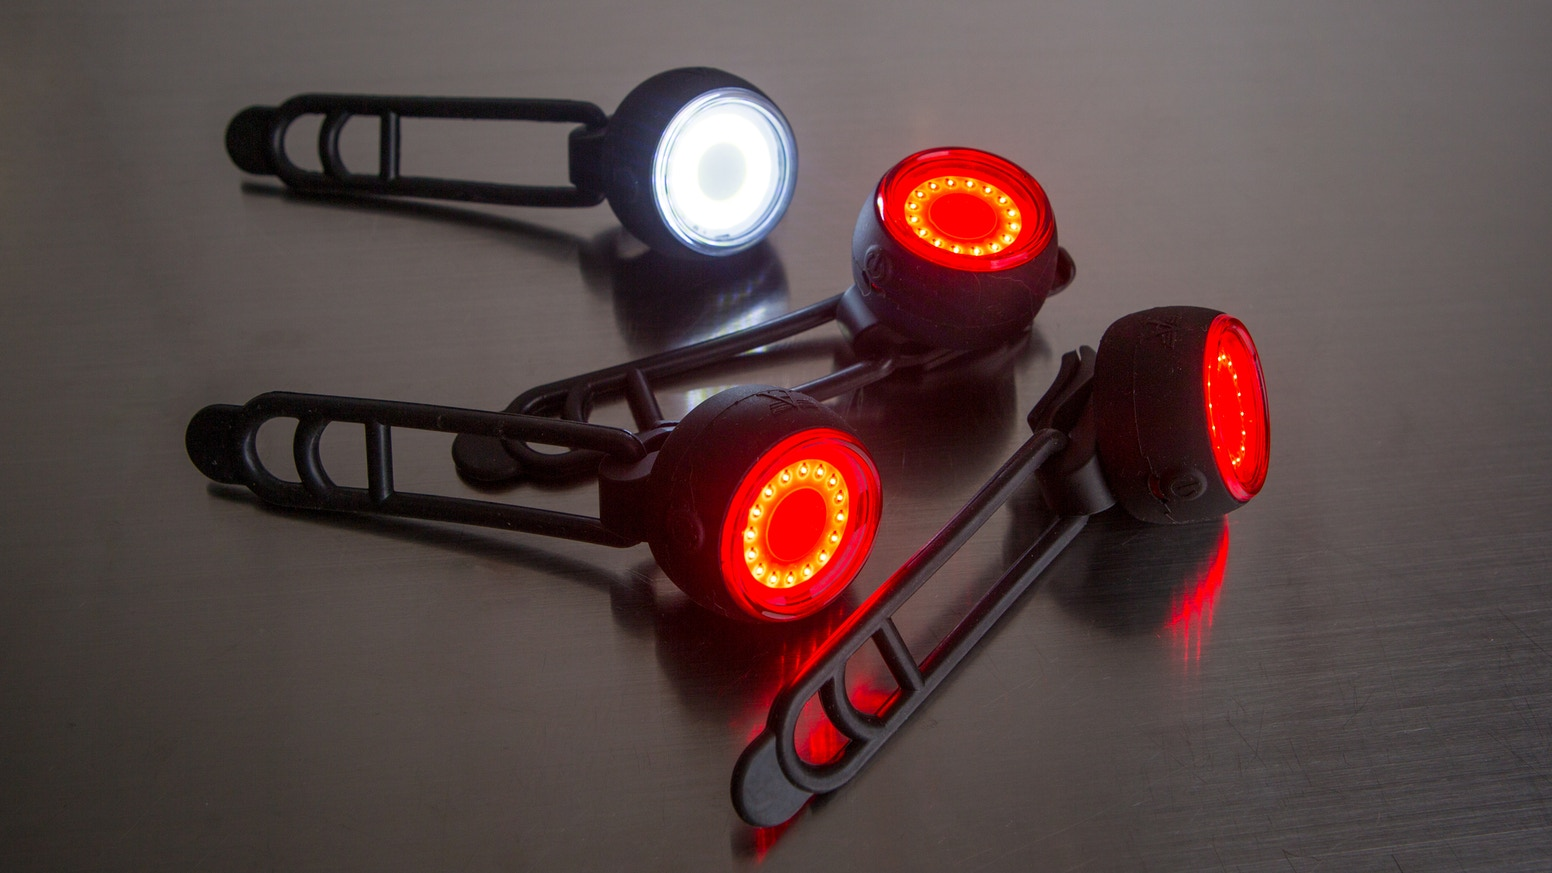 Synchronized Wireless Bicycle Lights Arsenal Cycling By Thomas Bike Tail Led Light Flashing